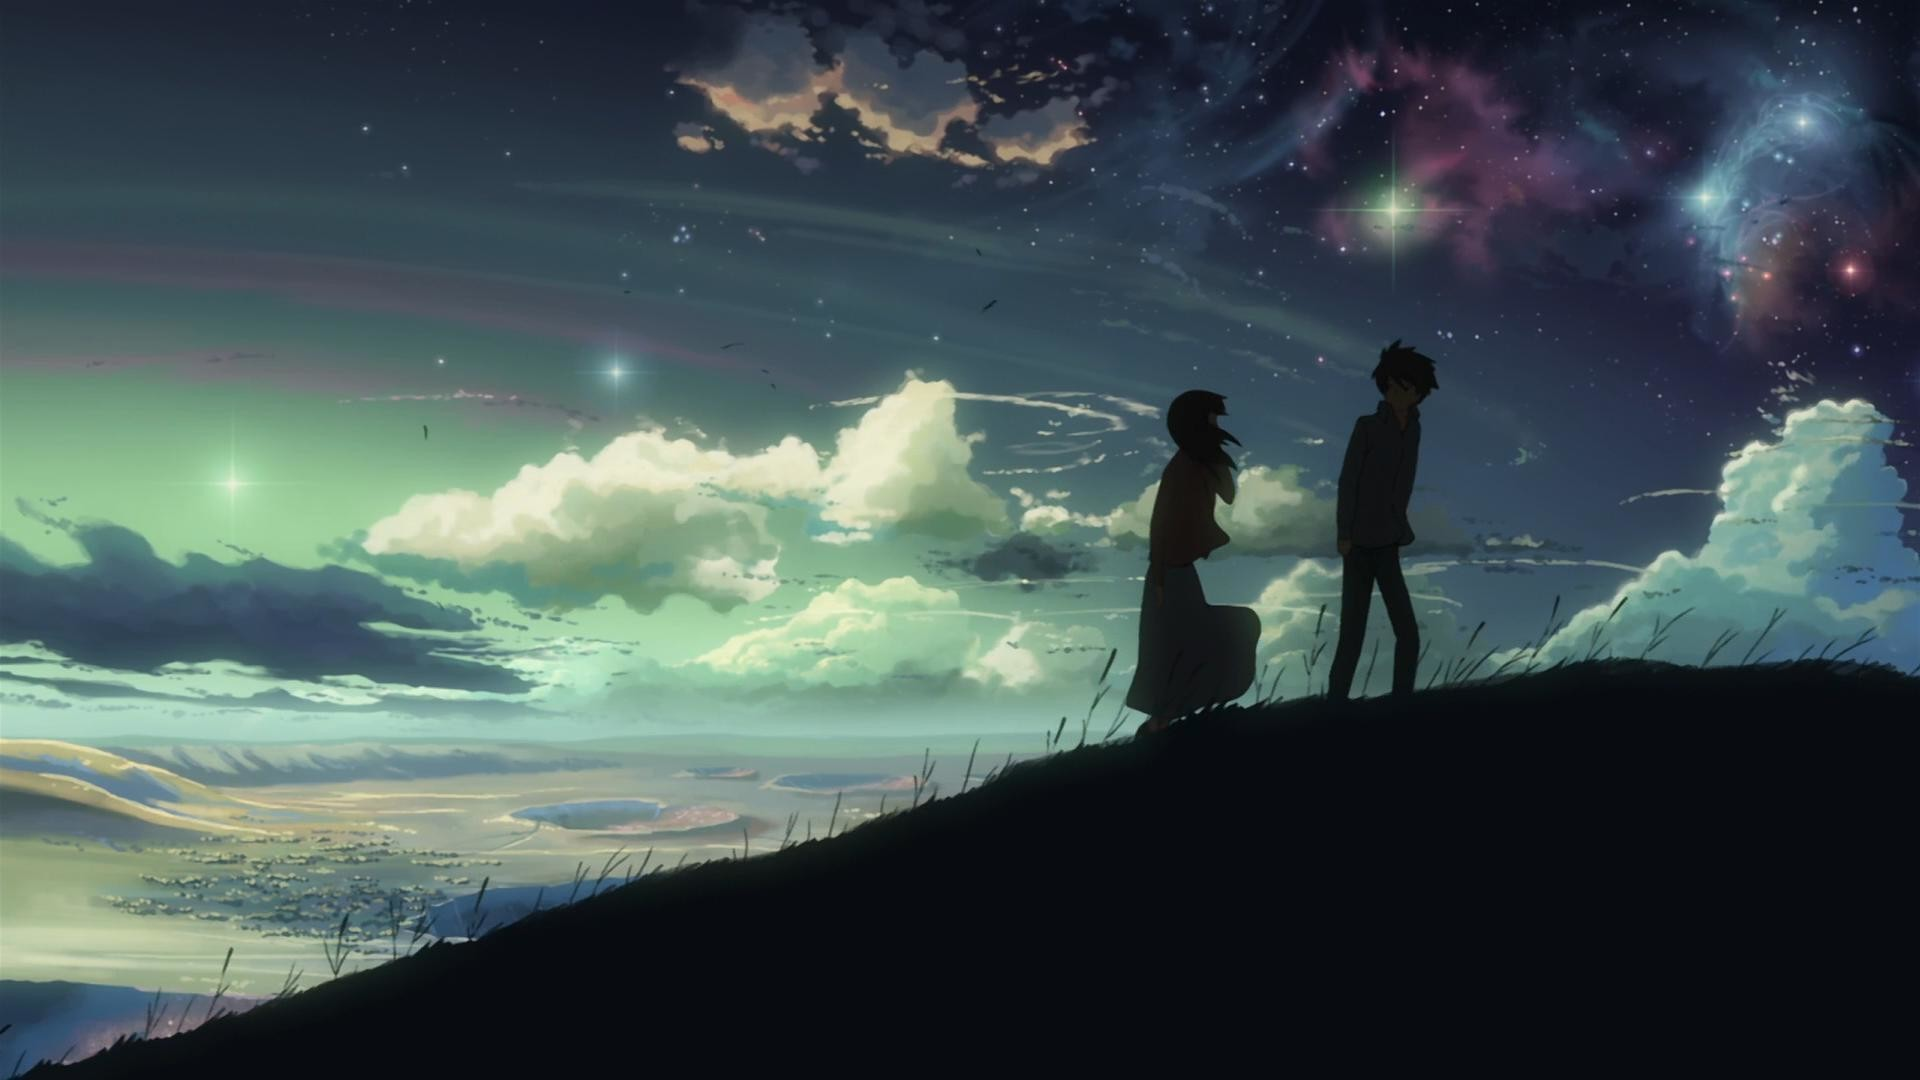 Res: 1920x1080,  Anime Wallpaper: Dark Anime Scenery Wallpaper Wide with HD Wide